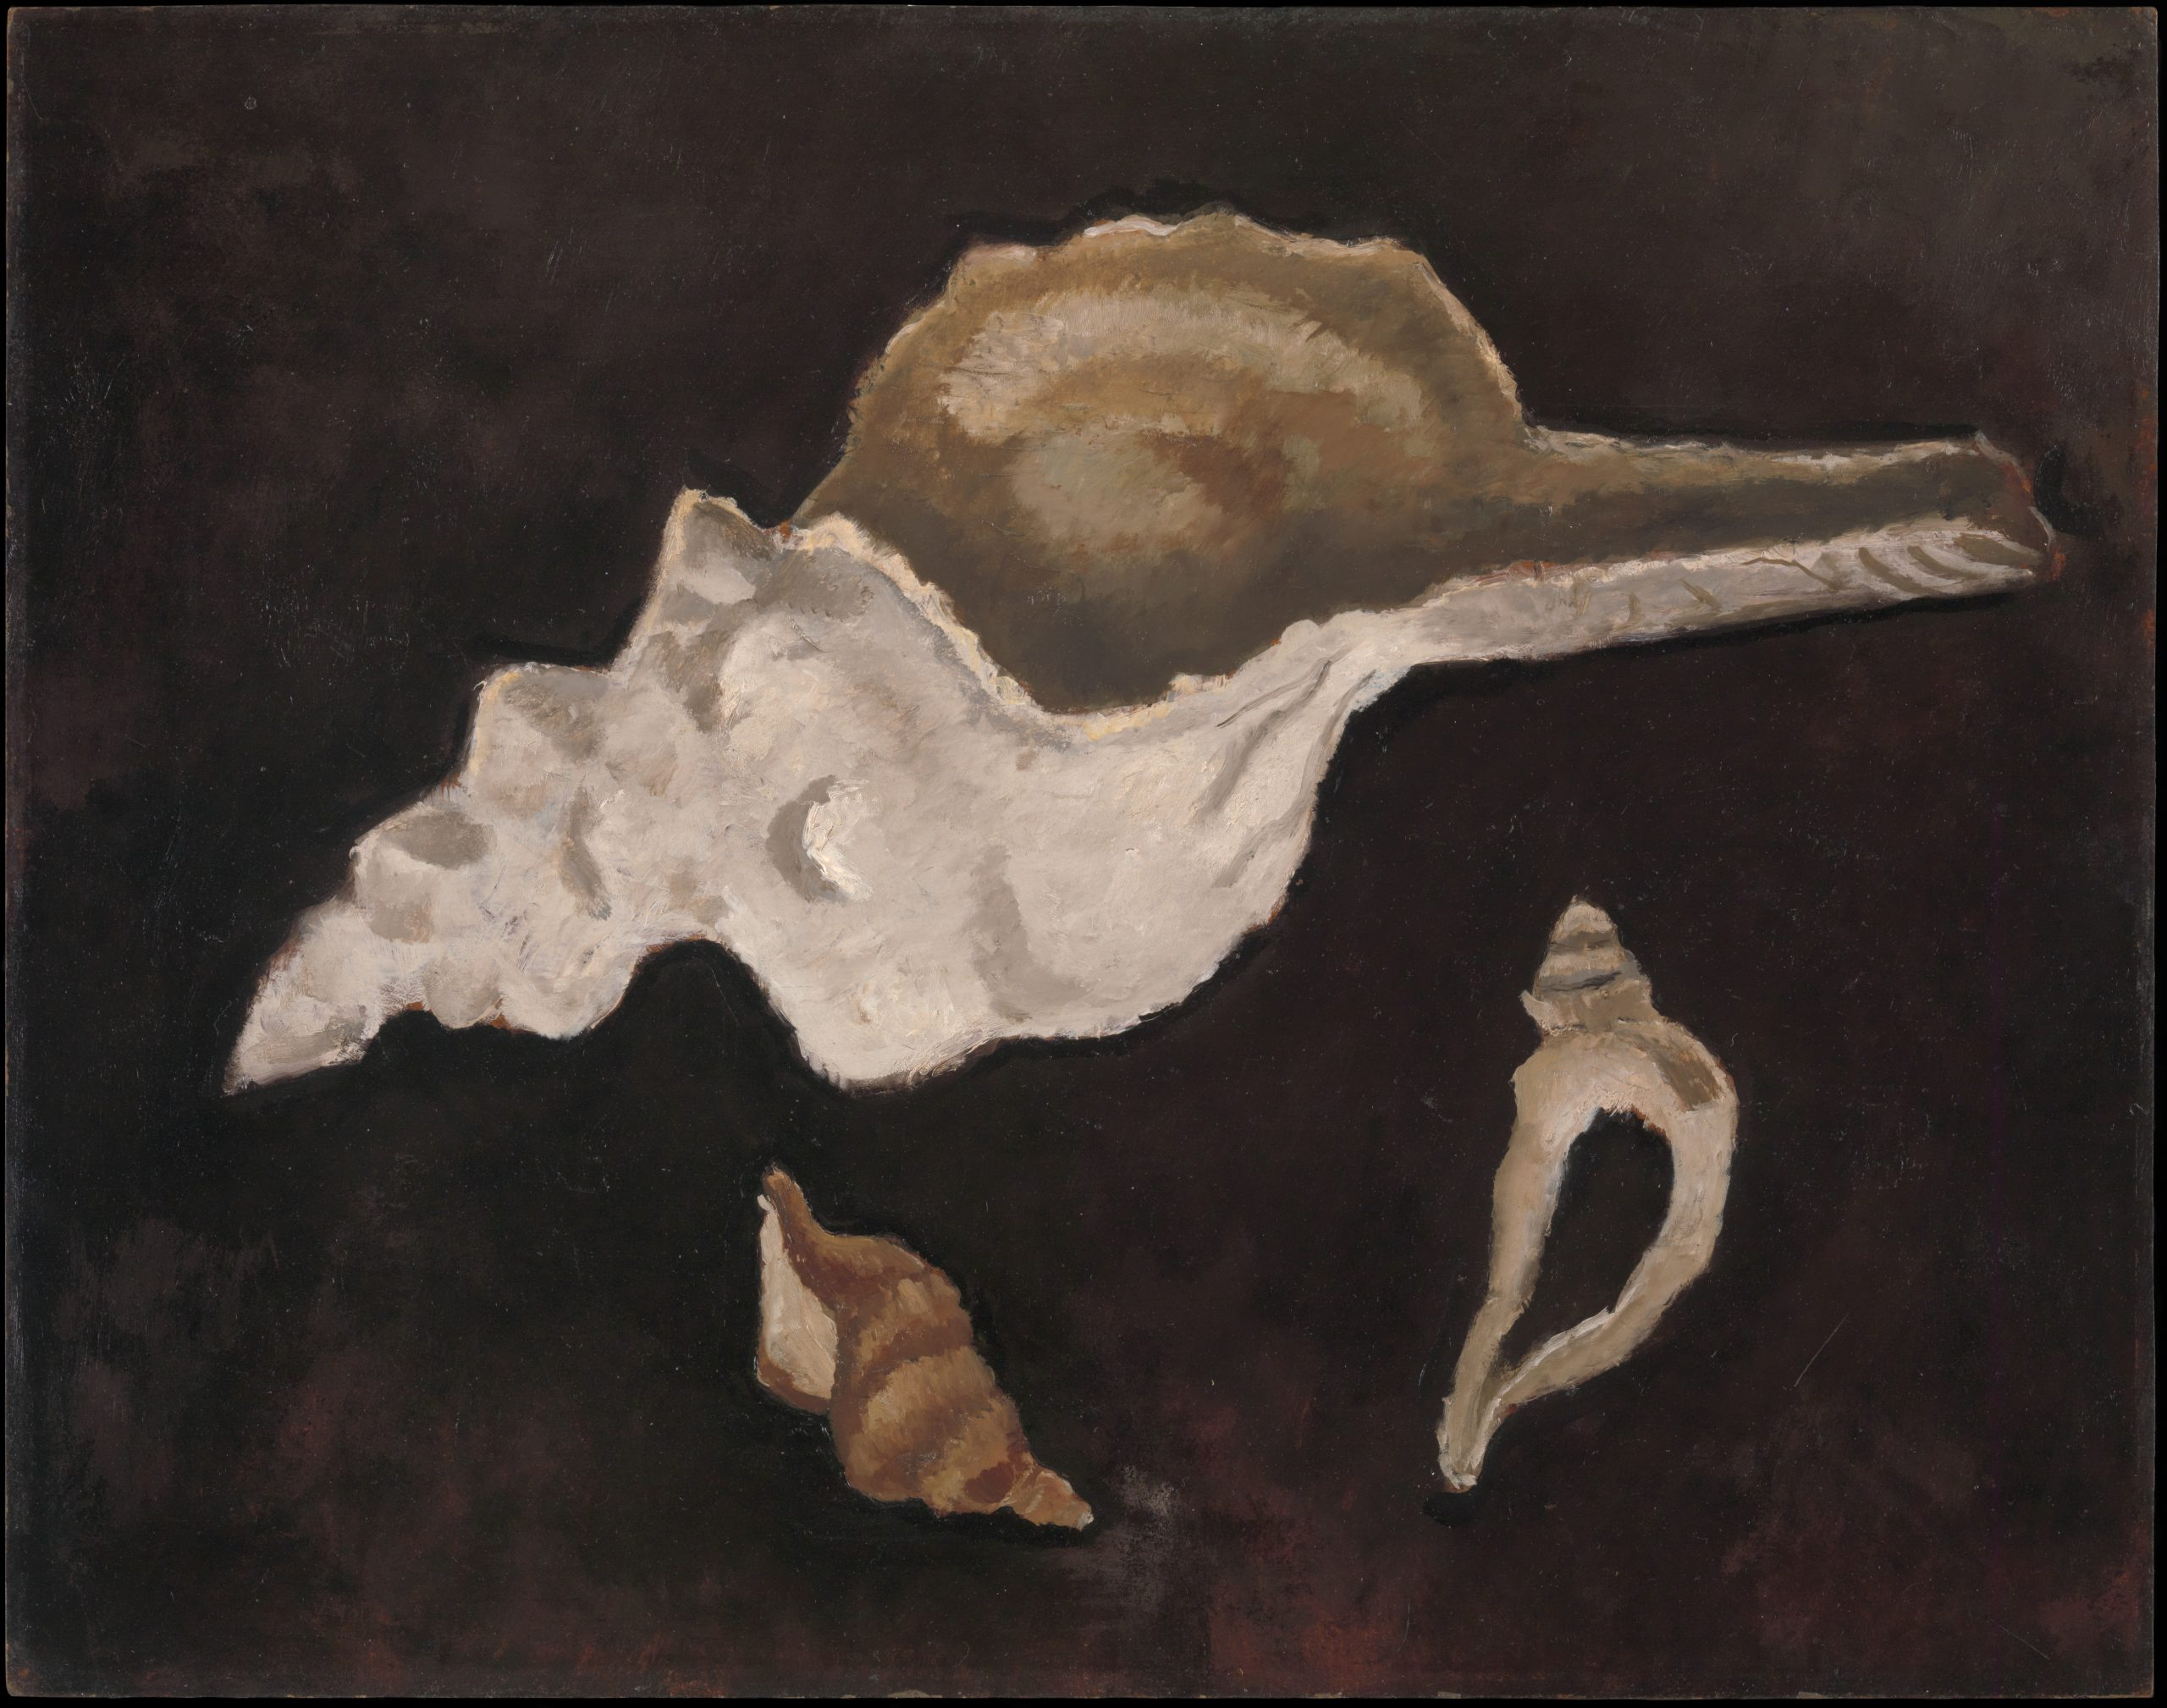 Two small, off-white conch shells below a larger shell on an empty black background.